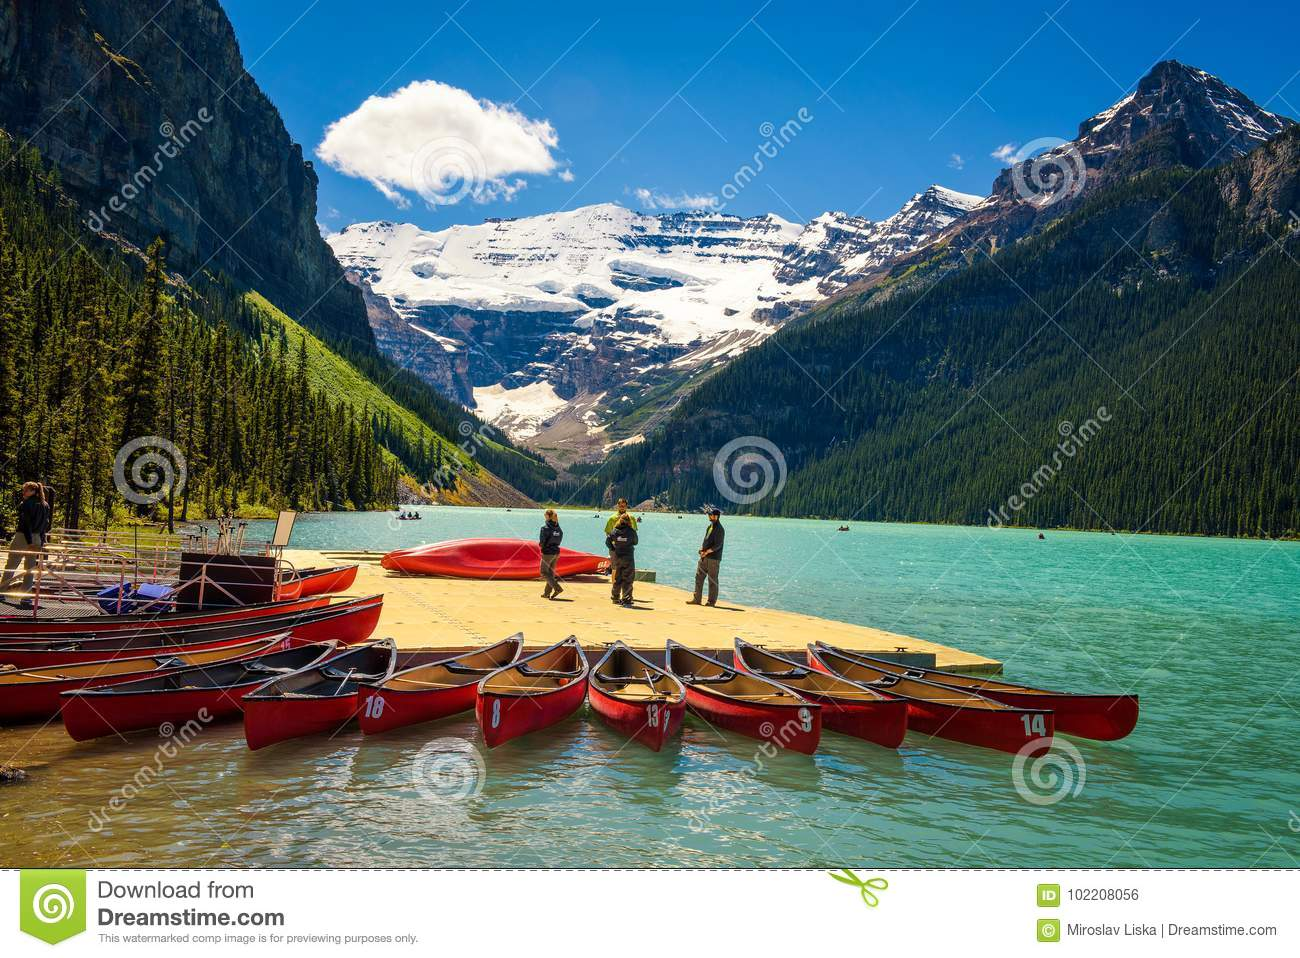 Canoes on a jetty at Lake Louise in Banff National Park, Canada